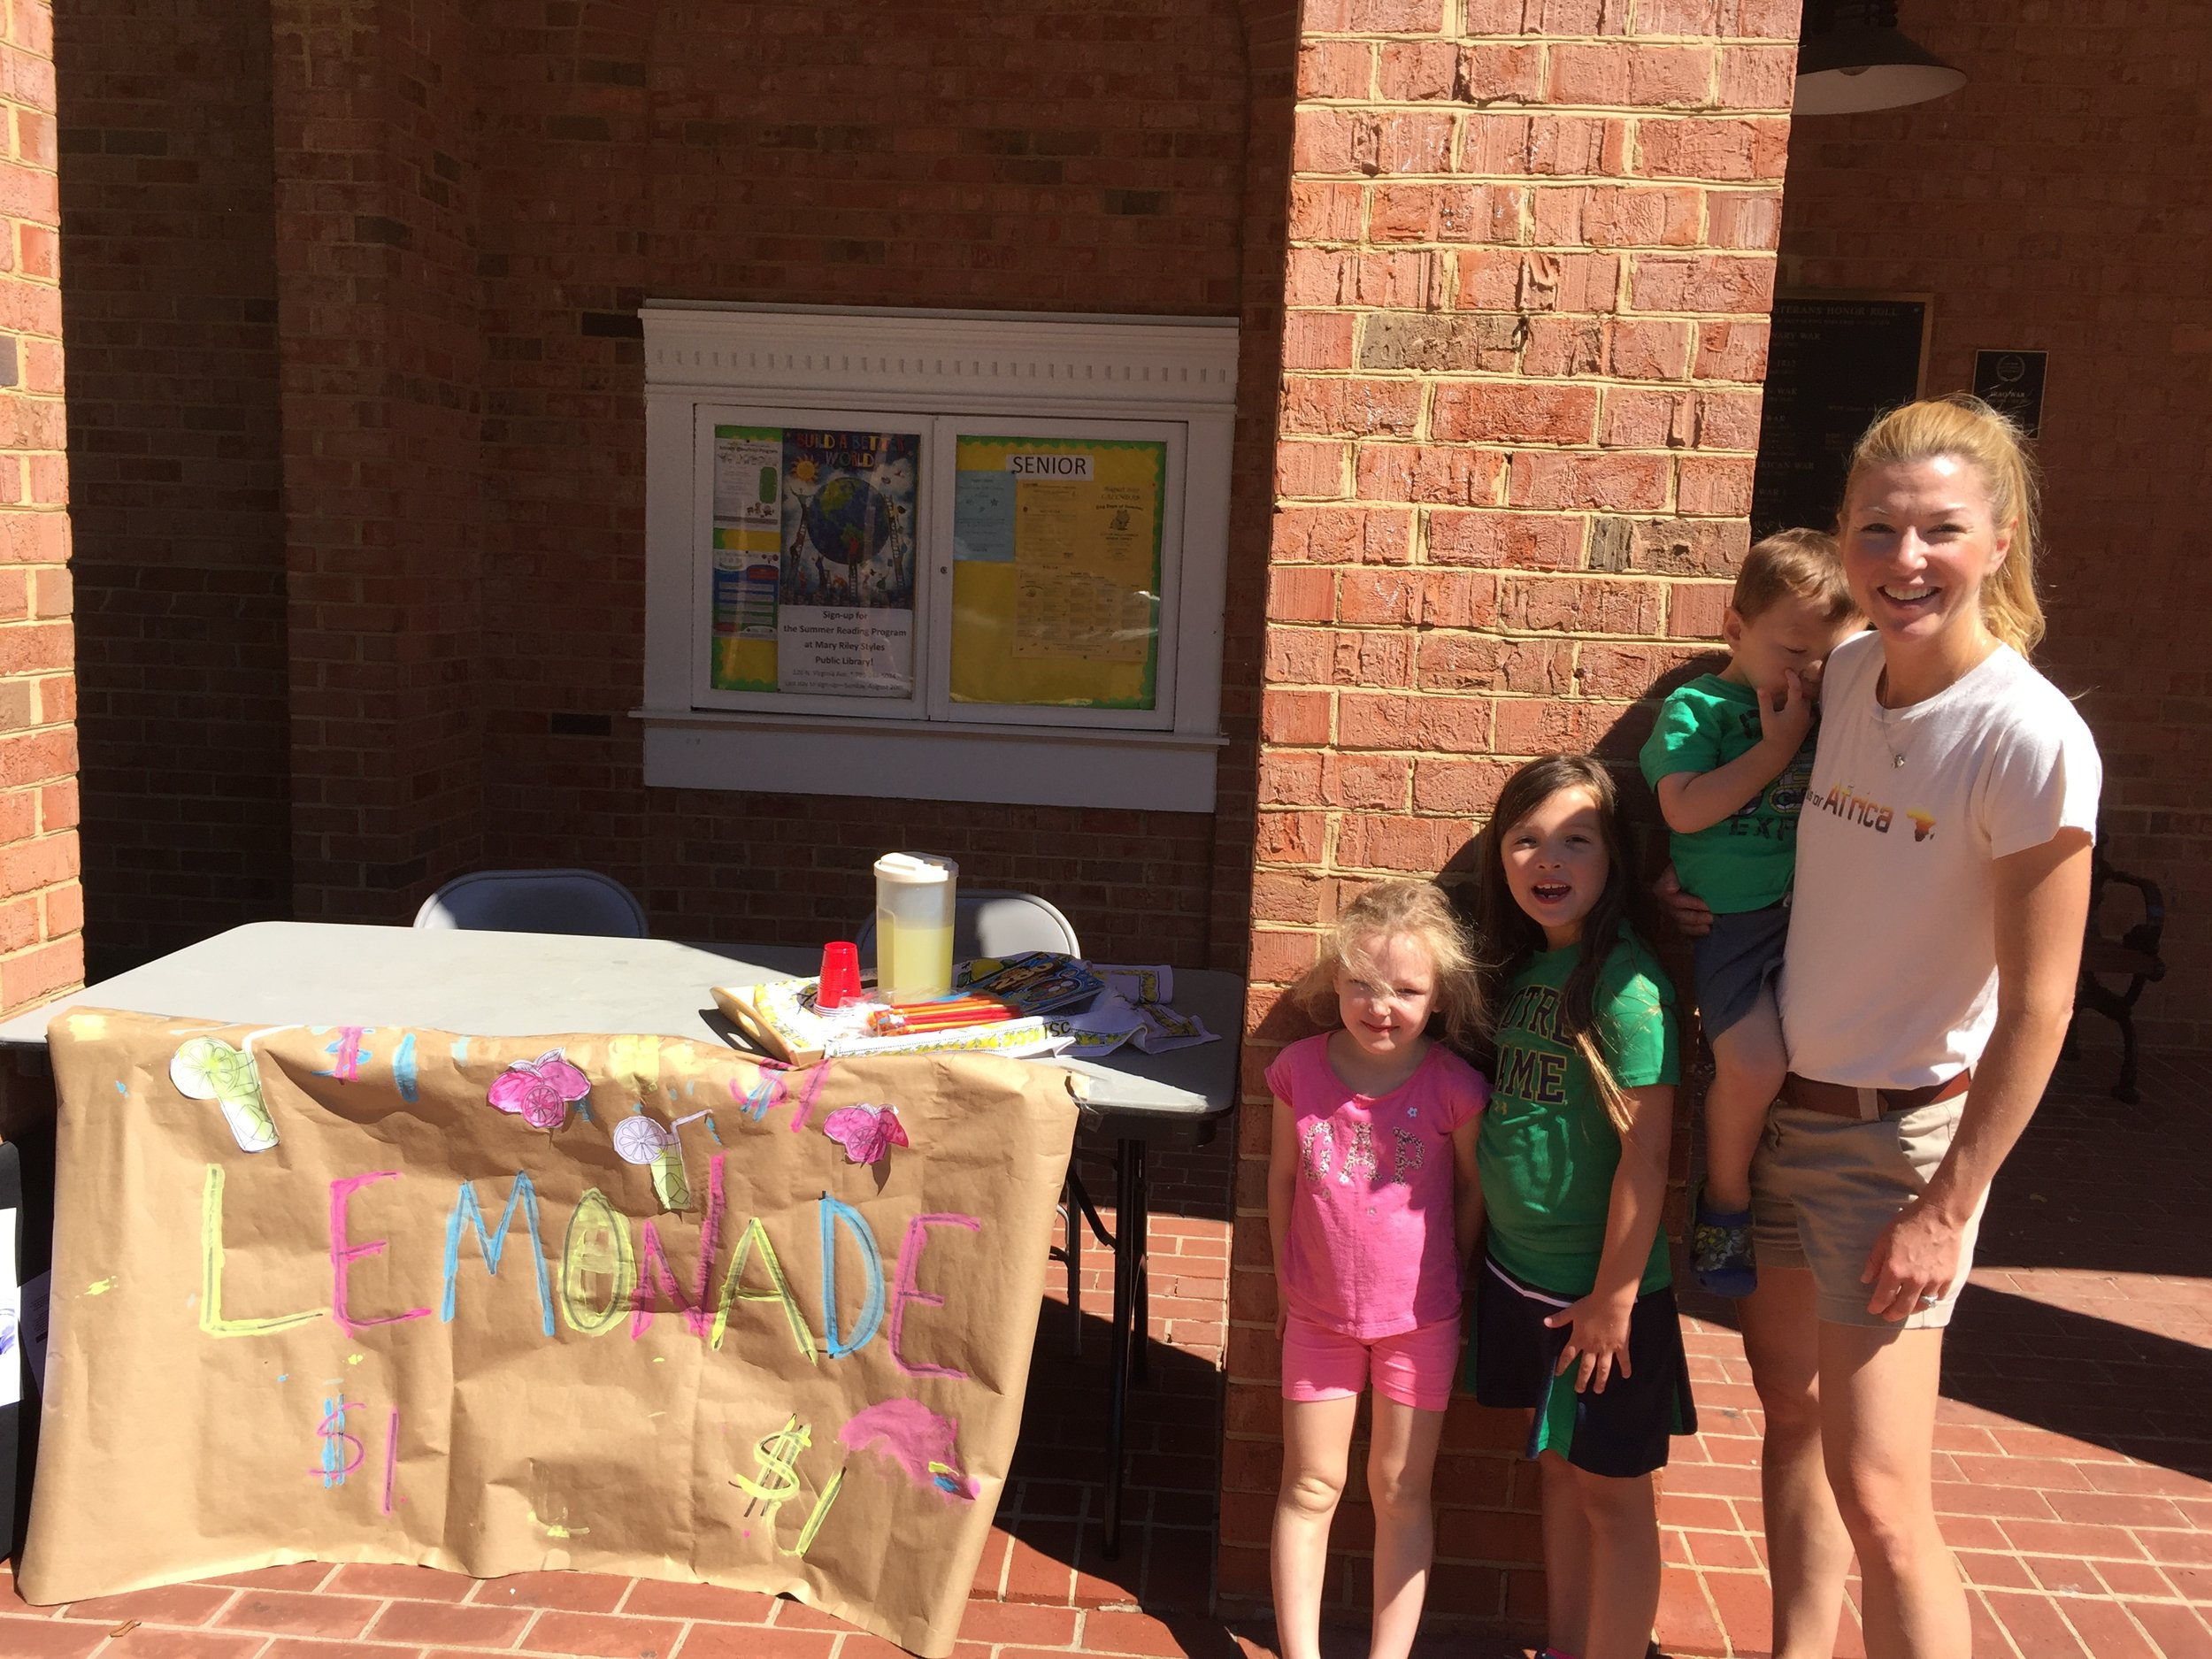 The kids and I closing up our lemonade stand. Success!